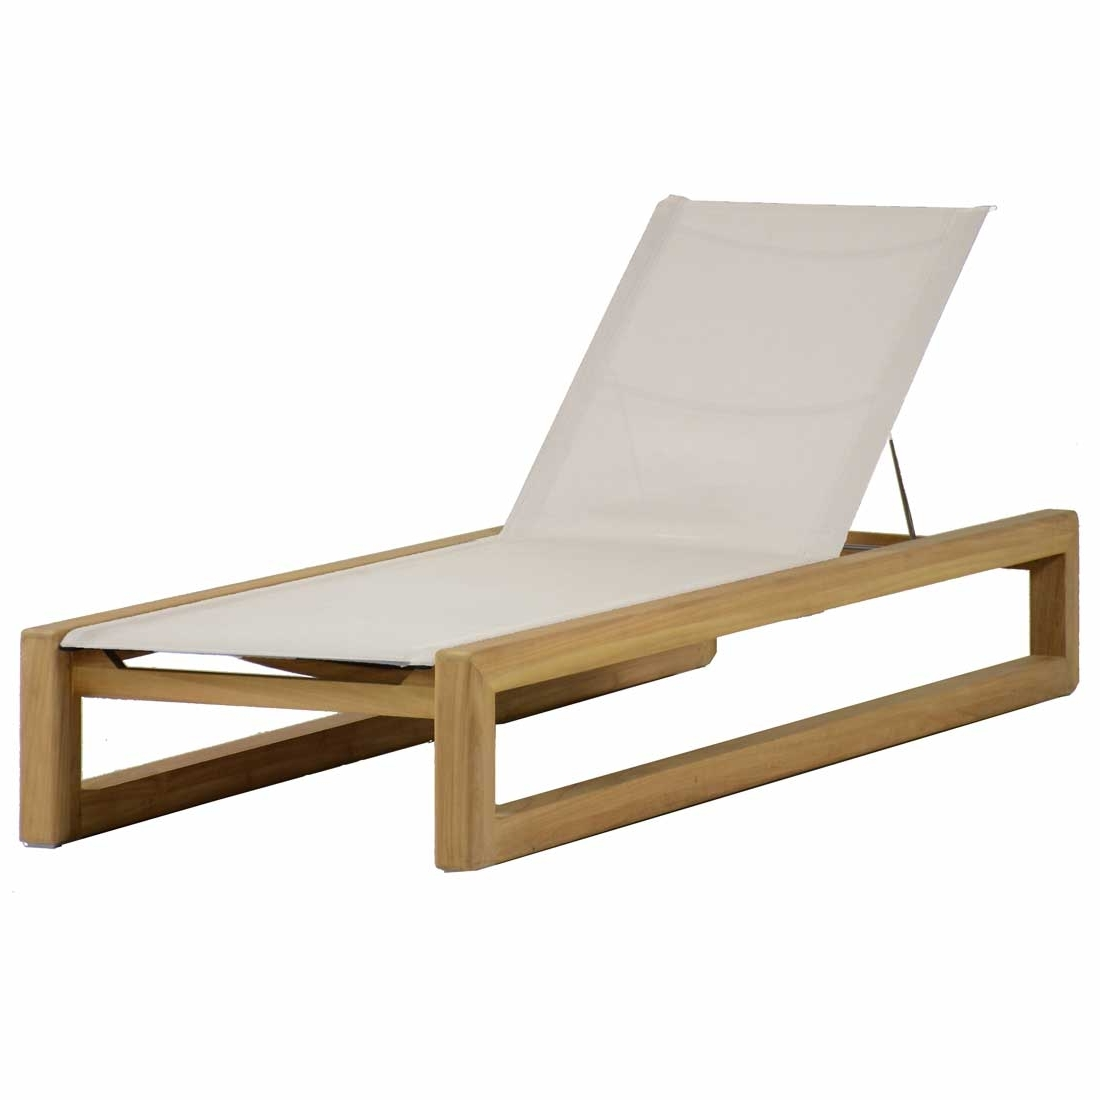 Teak Chaises Within Latest Bali Teak Chaise Lounge – Summer Classics (View 13 of 15)